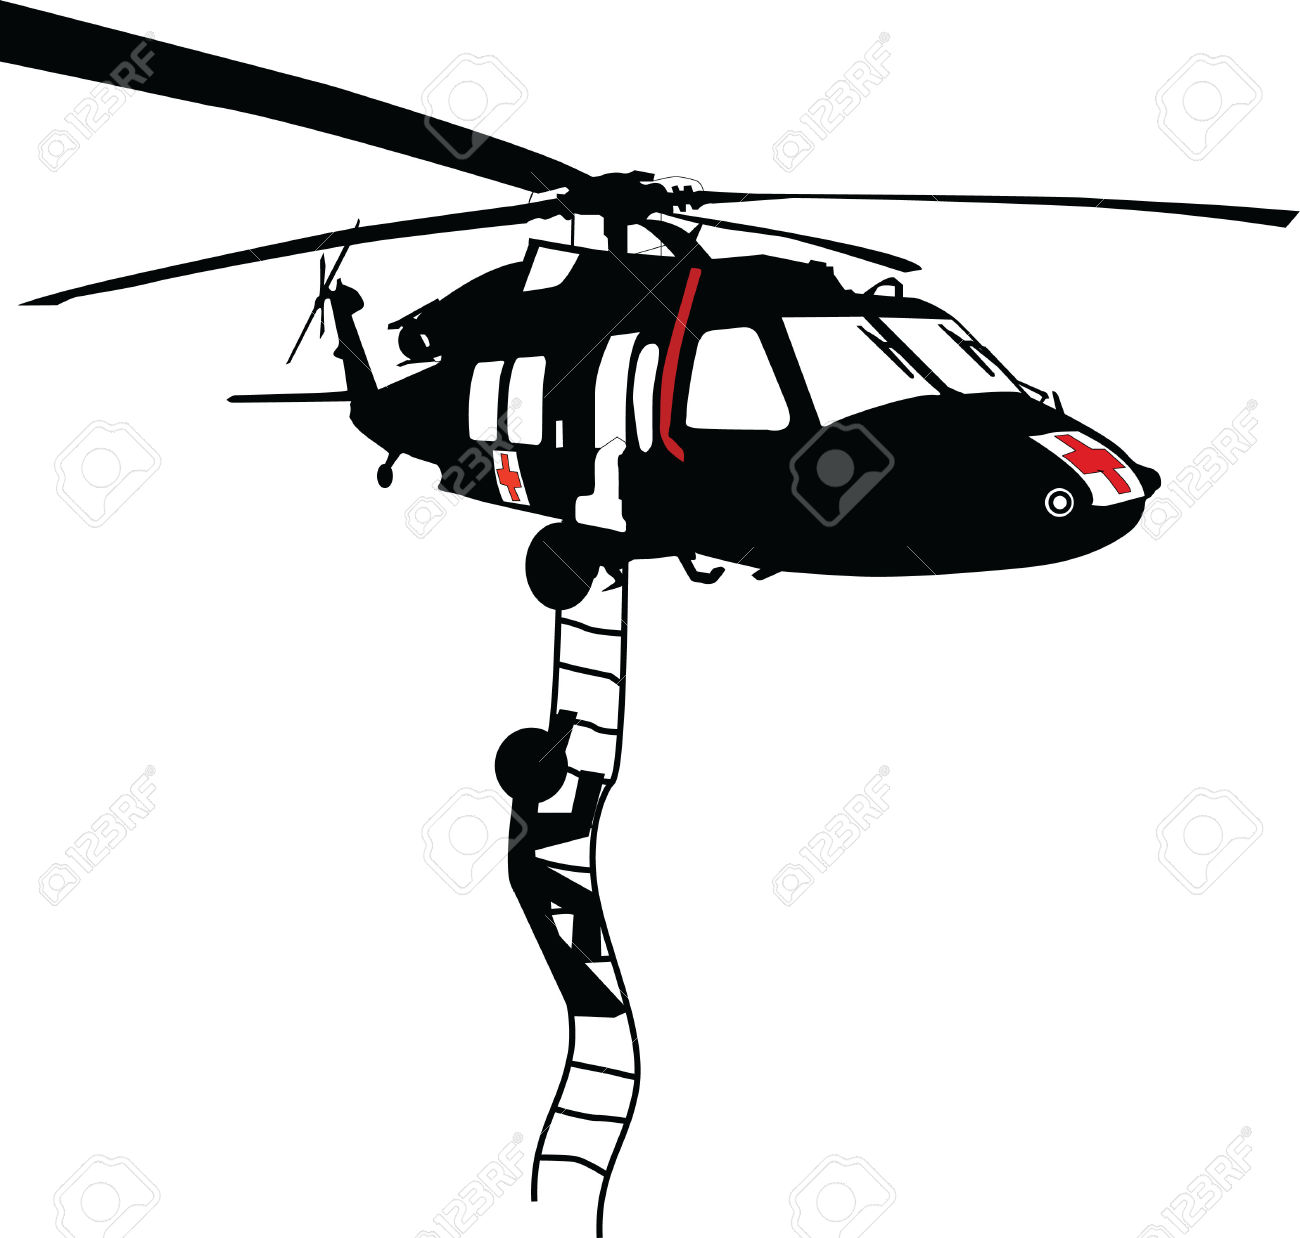 Rescue Helicopter Clipart.